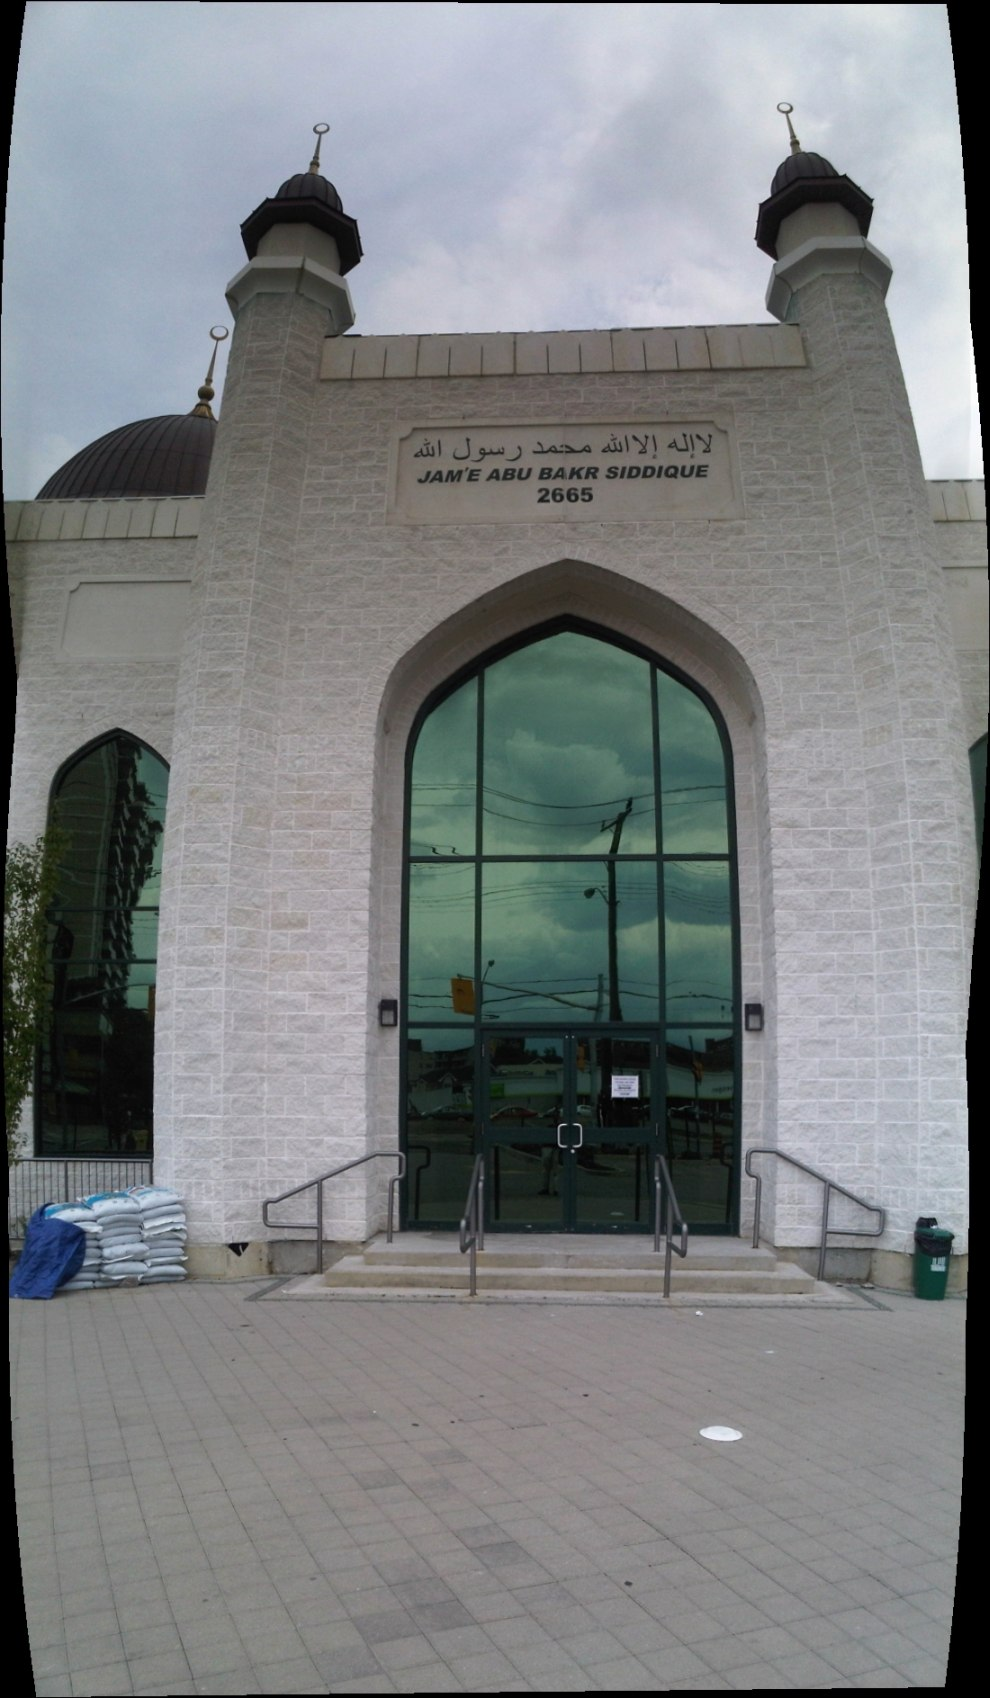 scarborough muslim The scarborough muslim association (sma) rented a hall and started offering religious services to accommodate a growing muslim population, in 1992 sma purchased land and a building at a.